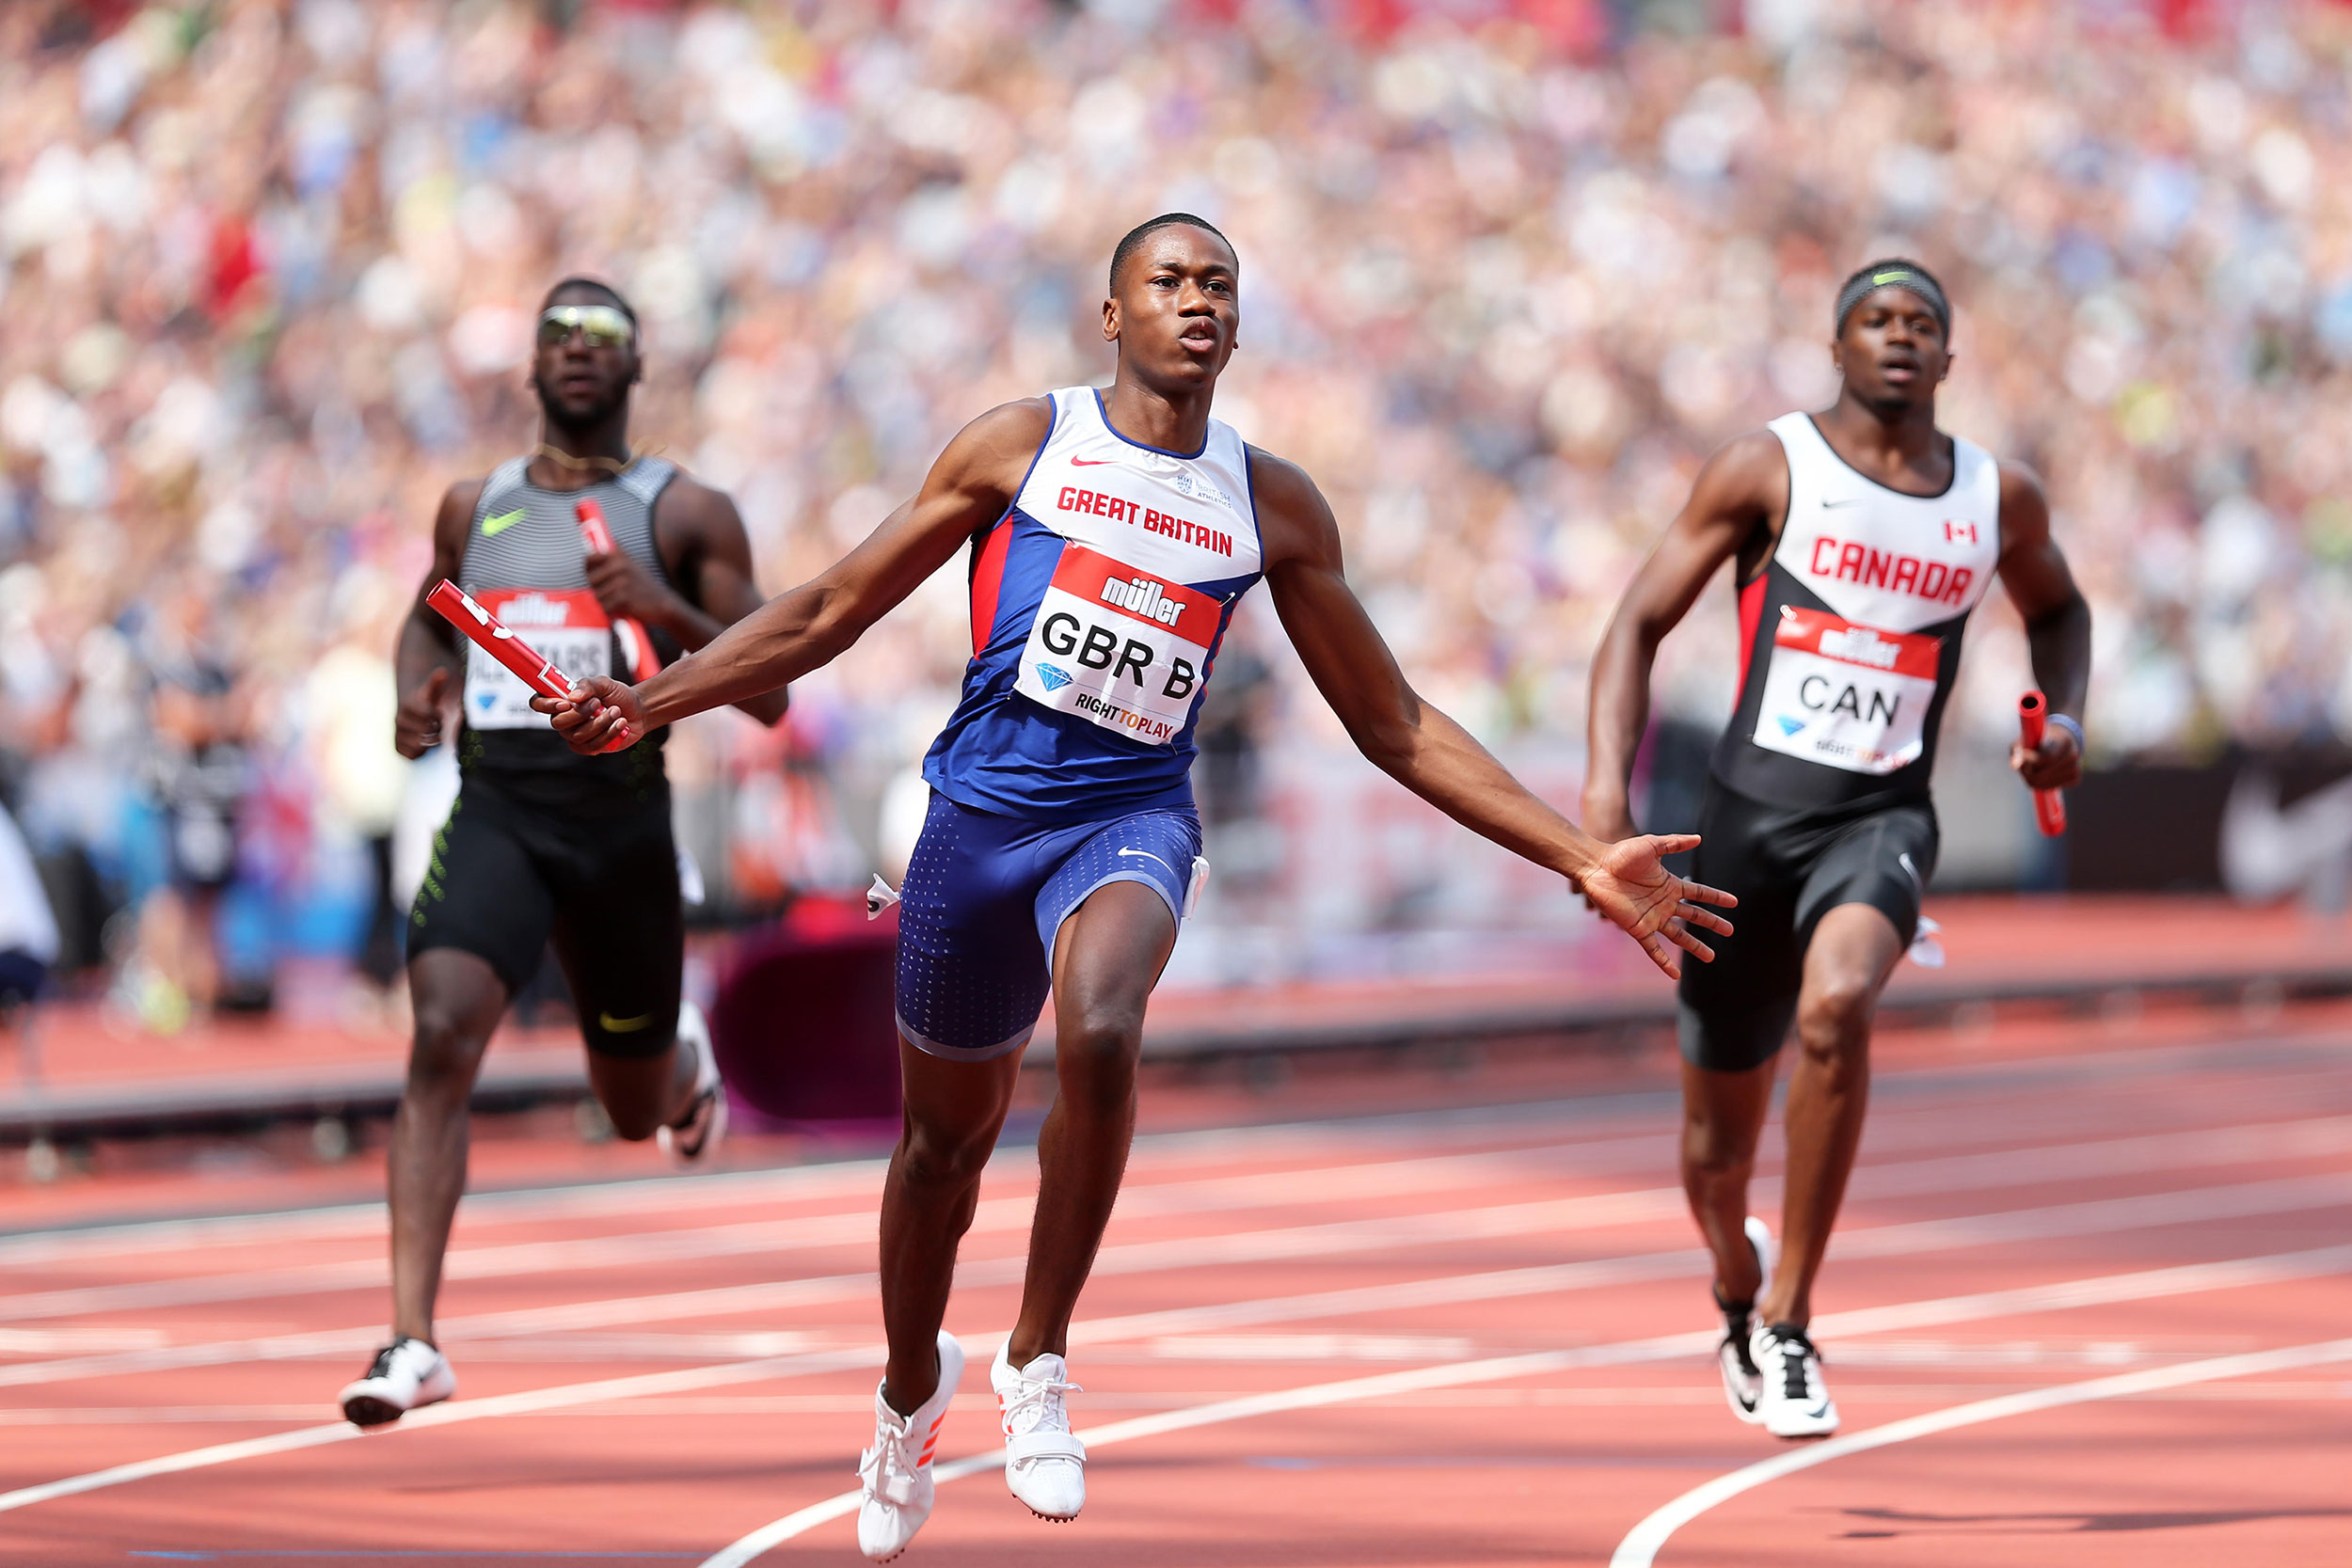 Ojie Edoburun - 100m & 200m sprinter who was part of the 4 x 100m Team GB relay squad at the Rio Olympics.In 2017 he is focused on the IAAF World Championships in London and ready to make his mark in the sprint world!We caught up with Ojie ahead of his ambassador month with us in June.